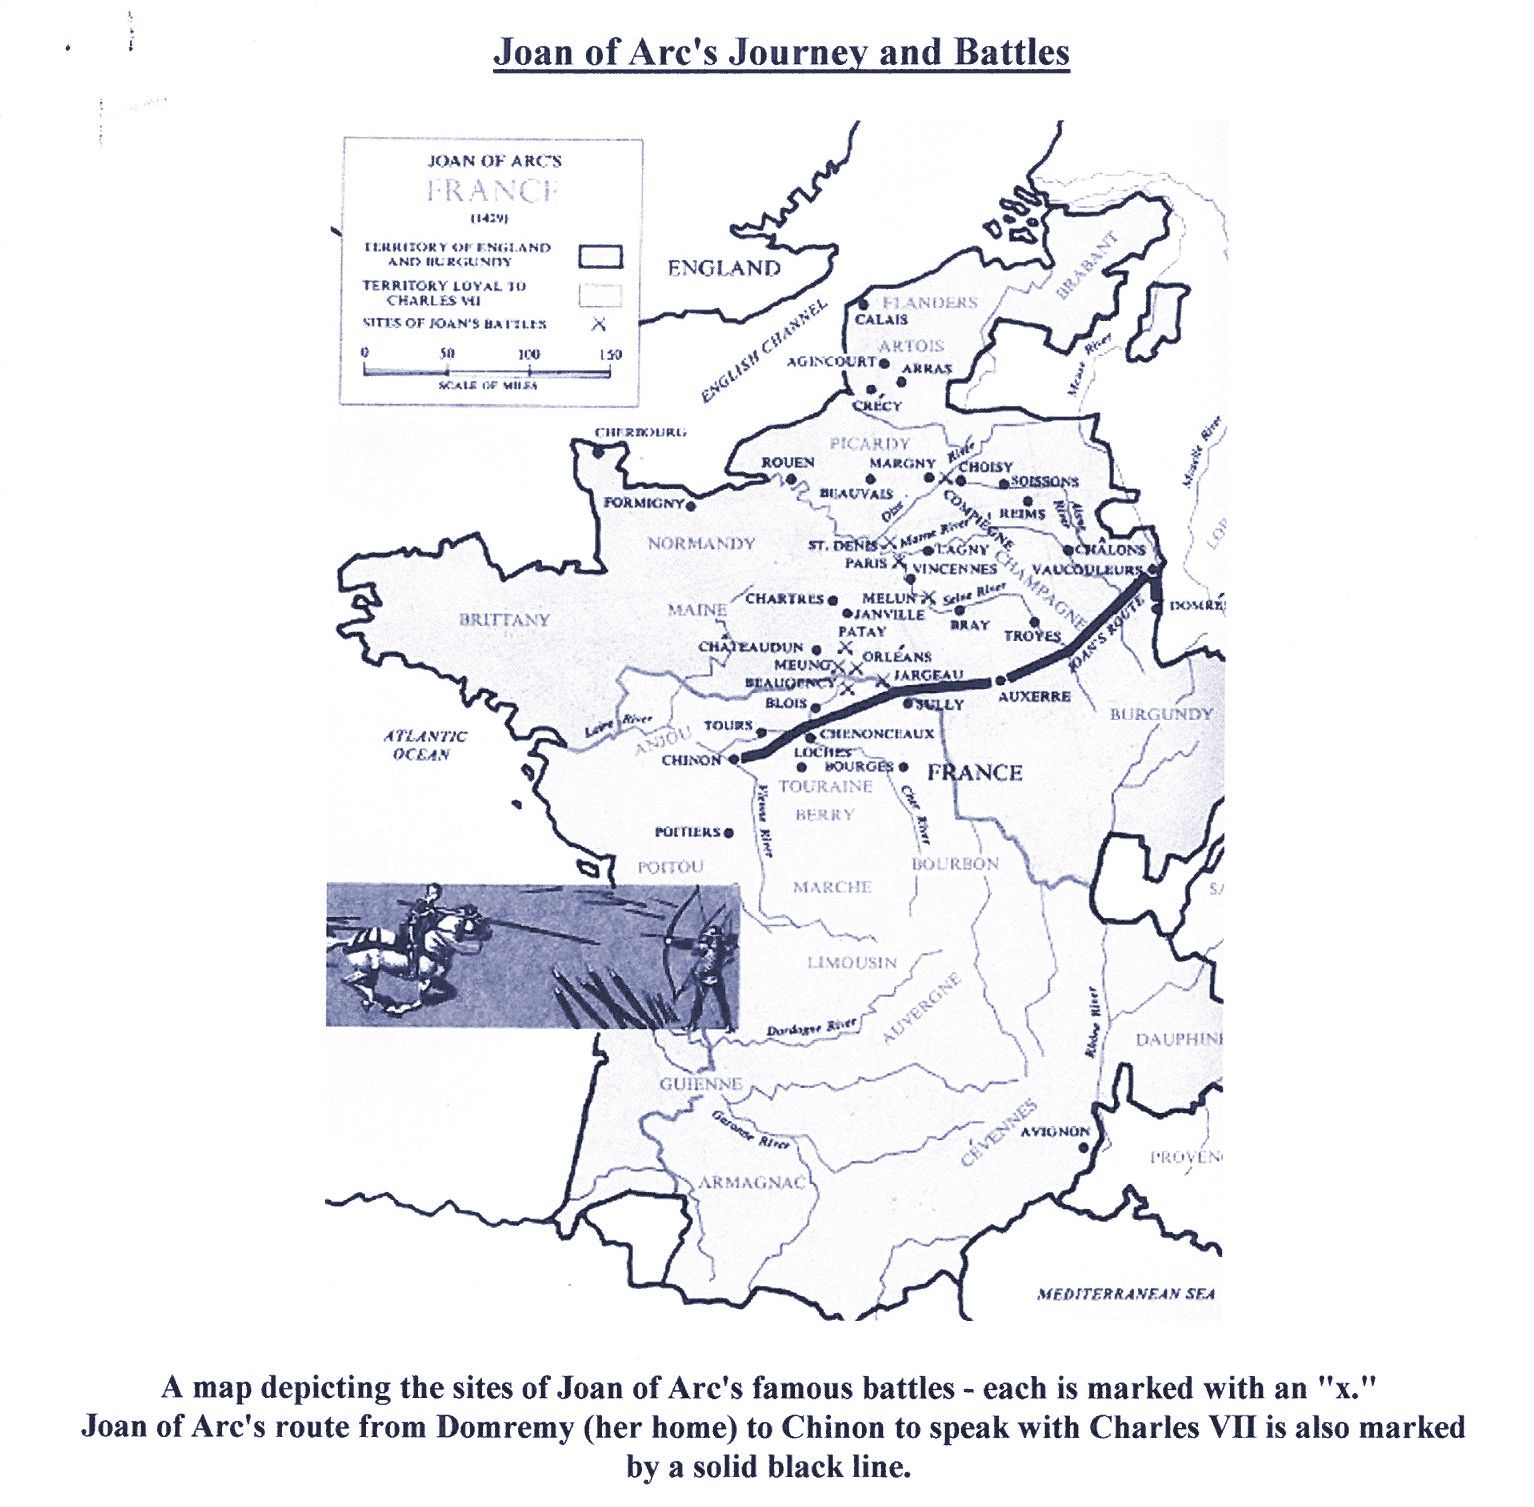 map of joans journey and battles